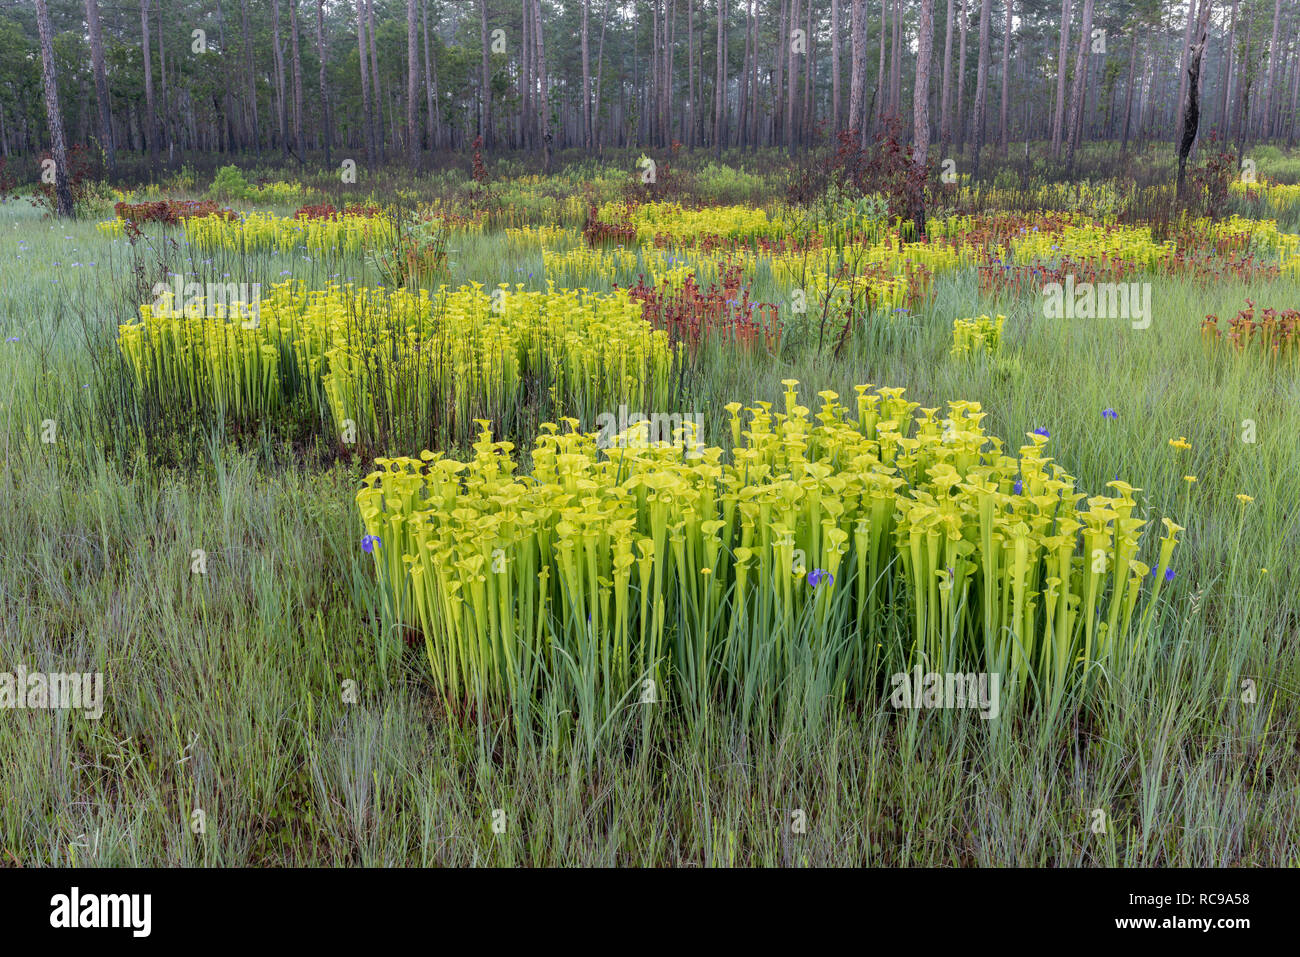 Yellow Trumpet Pitcher plants (Sarracenia flava) Post burn growth on perimeter of a carolina bay. Note the scattered blue blooms of Savannah Iris. - Stock Image